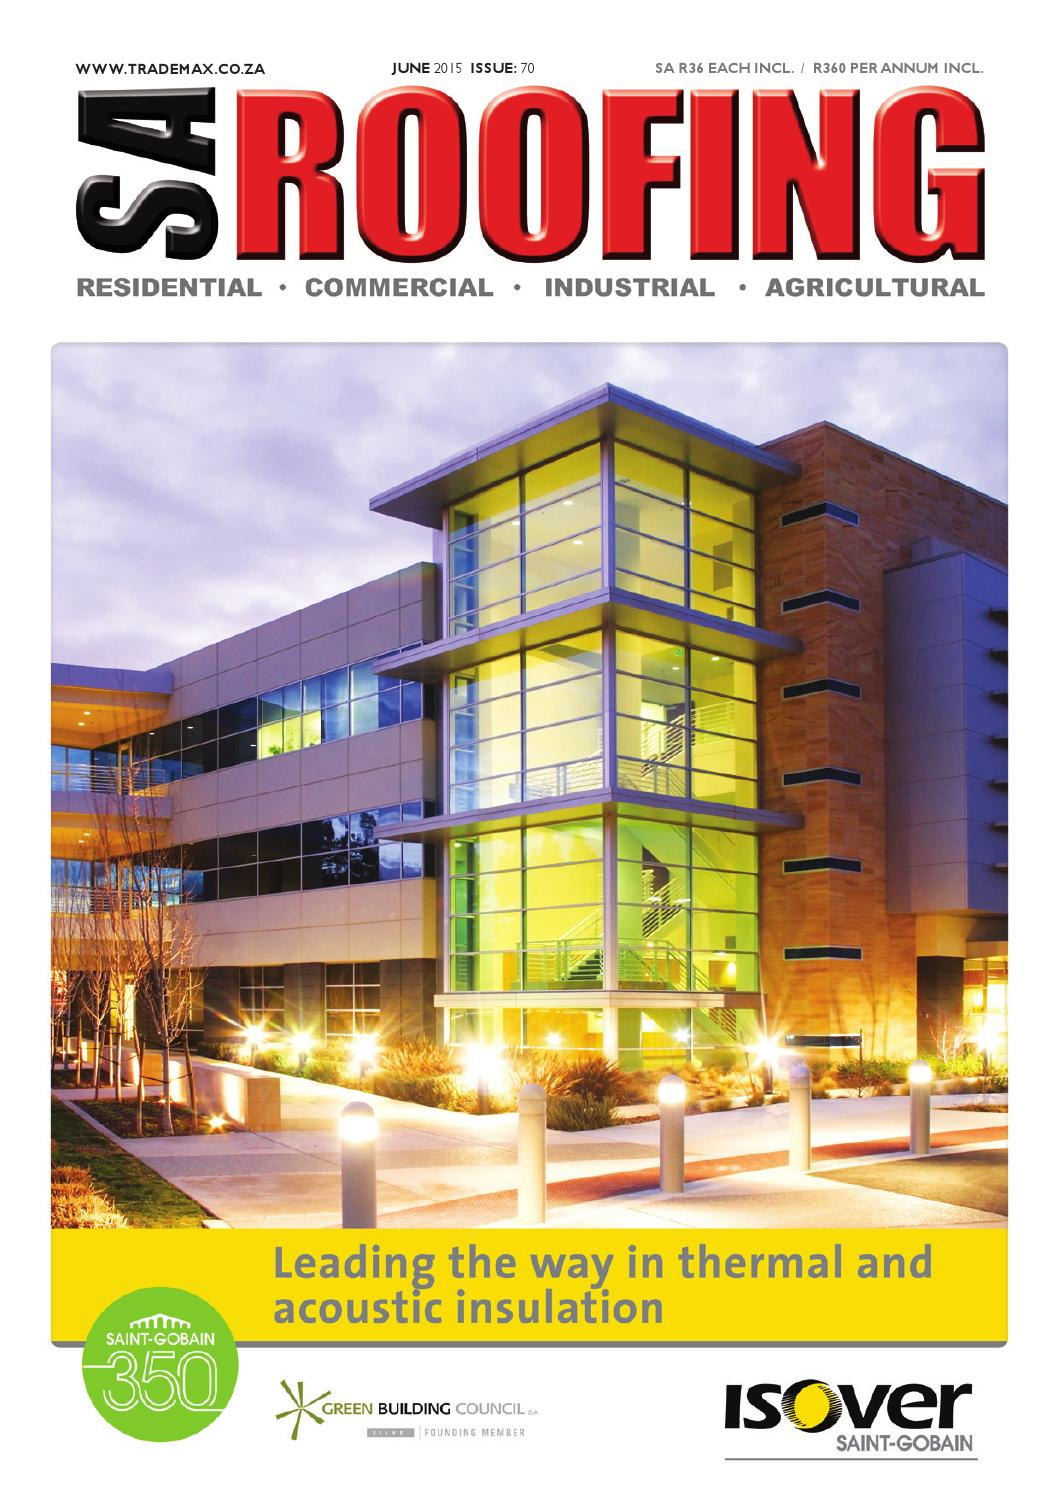 SA Roofing June 2015 | Issue: 70 by Trademax Publications